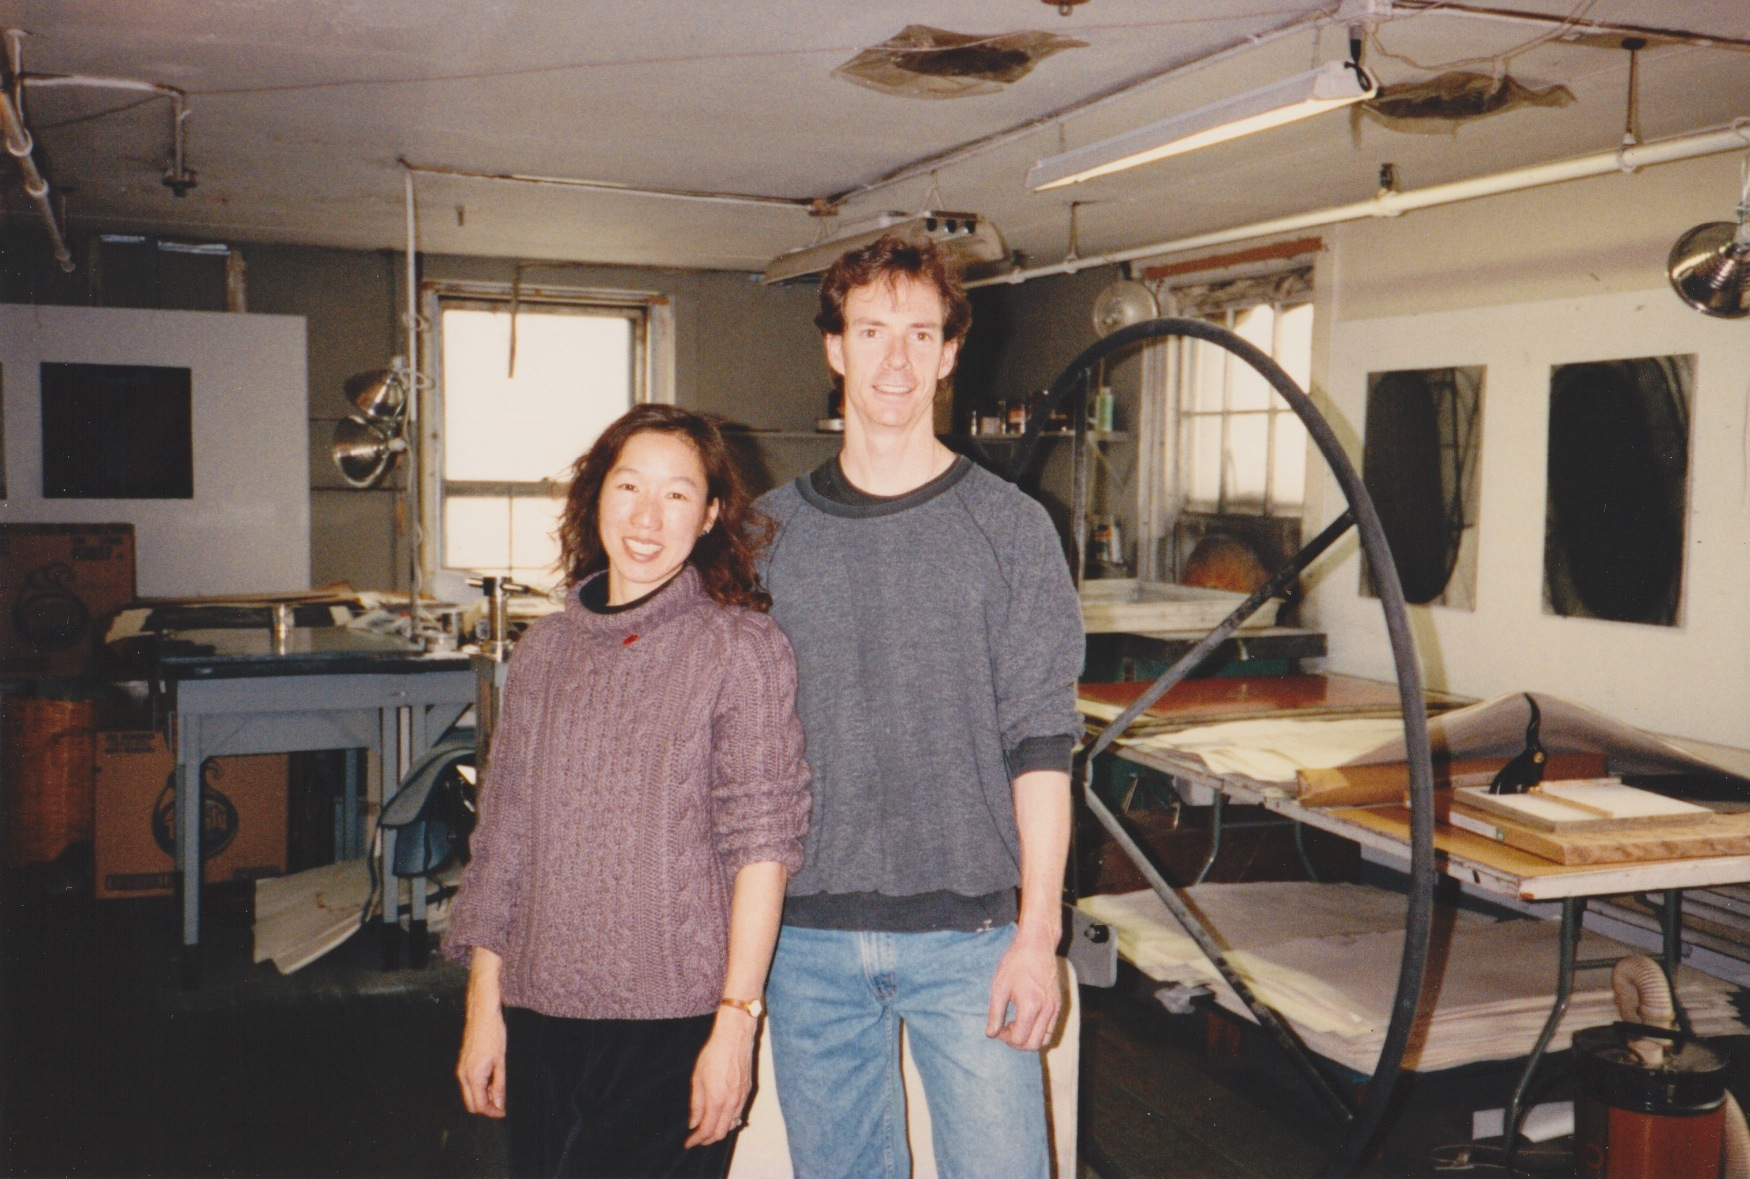 Janine Wong and James Stroud in the Distillery Building circa 1993.